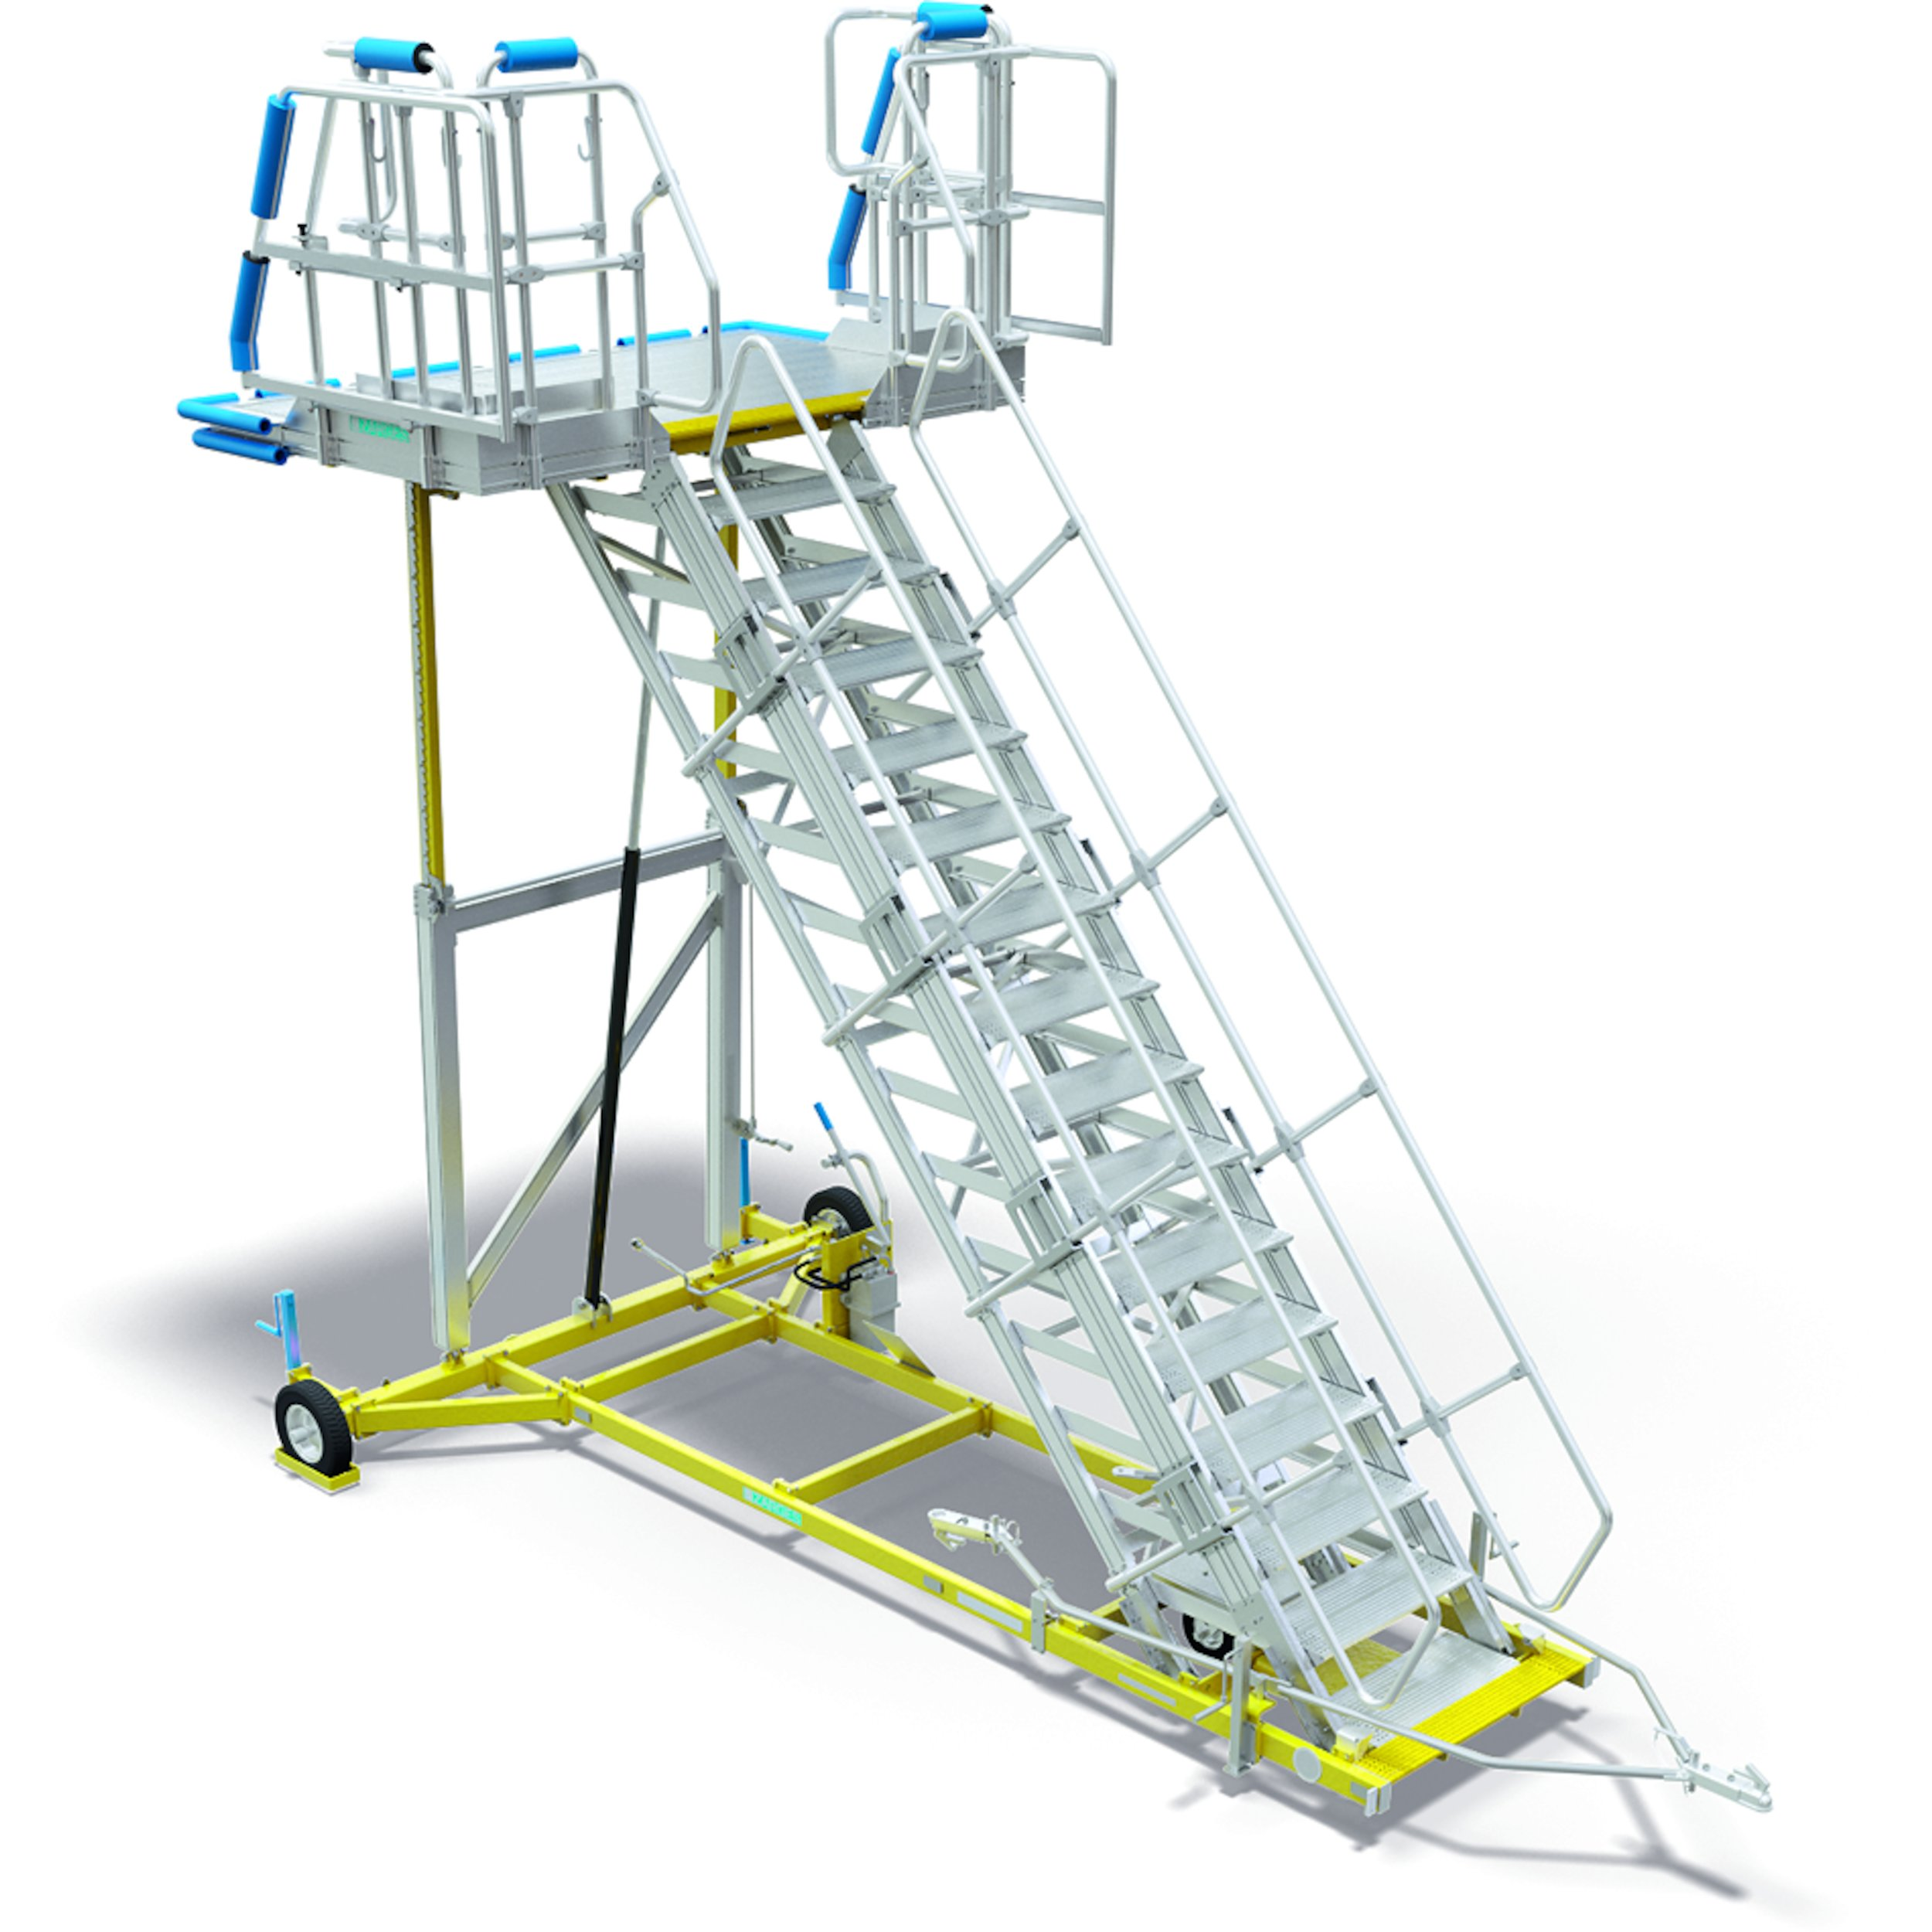 Universal maintenance stairs with height adjuster for the